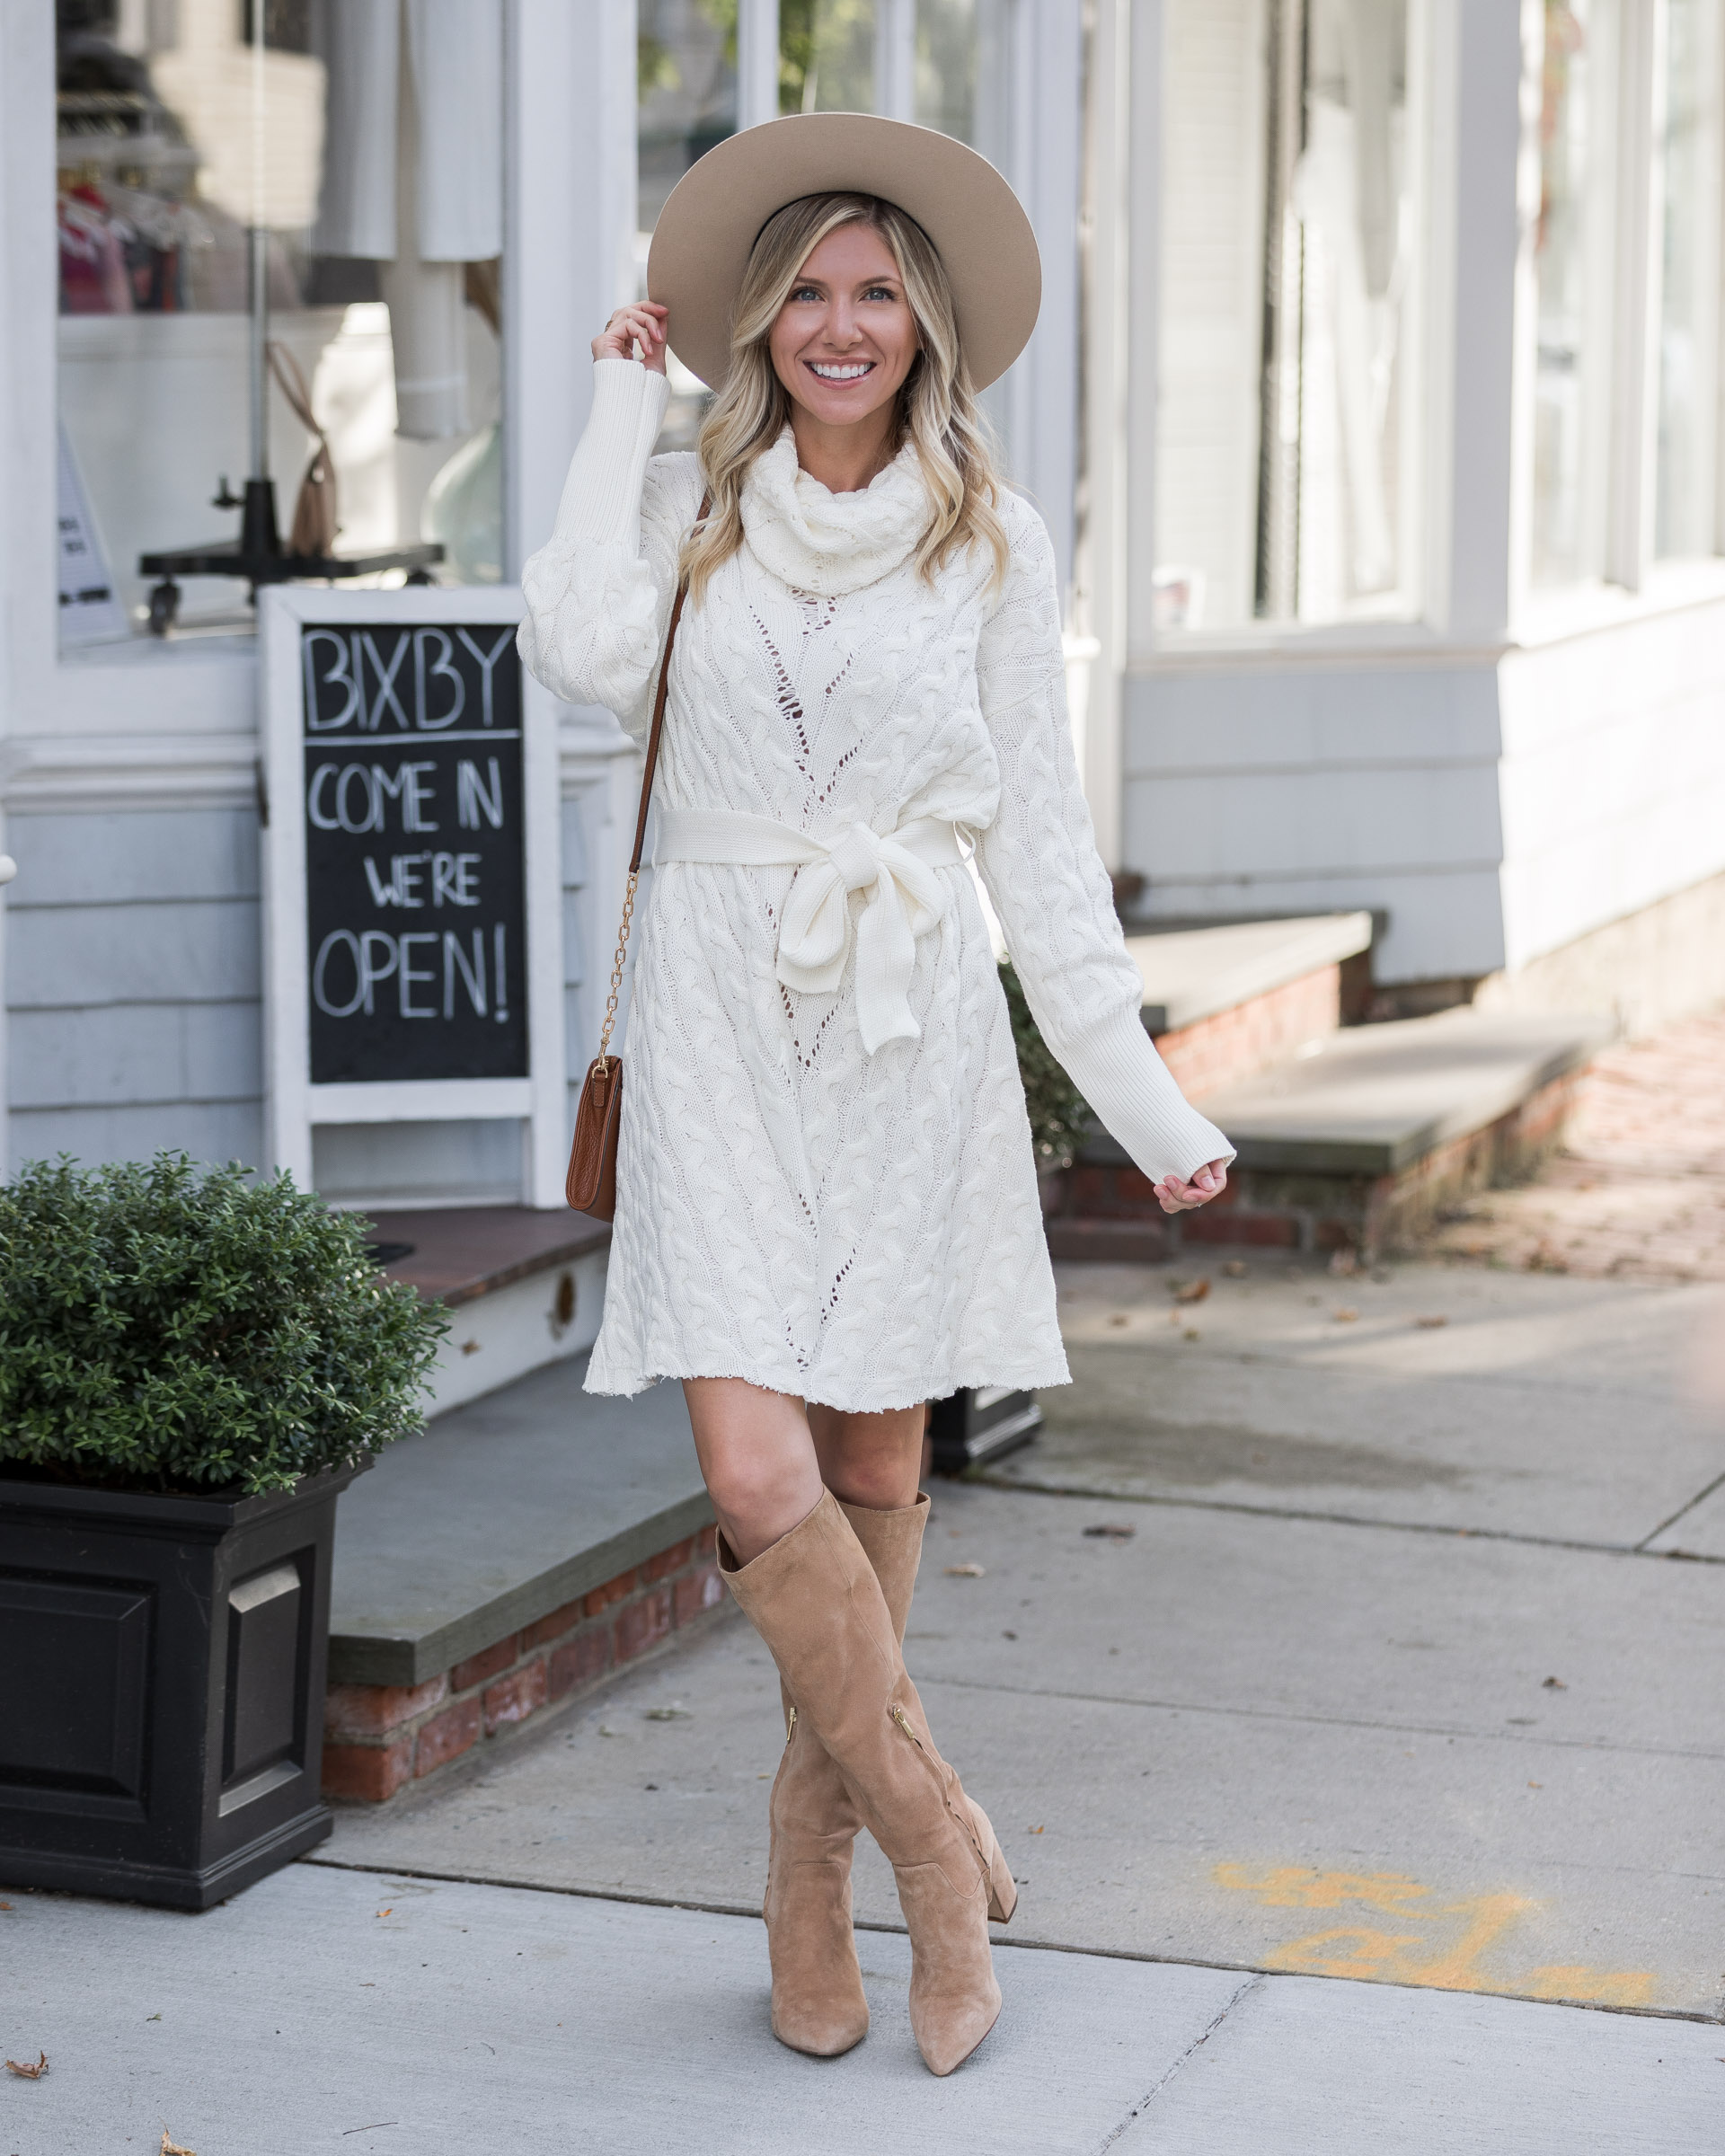 white-sweater-dress-with-neutral-accessories-the-glamorous-gal